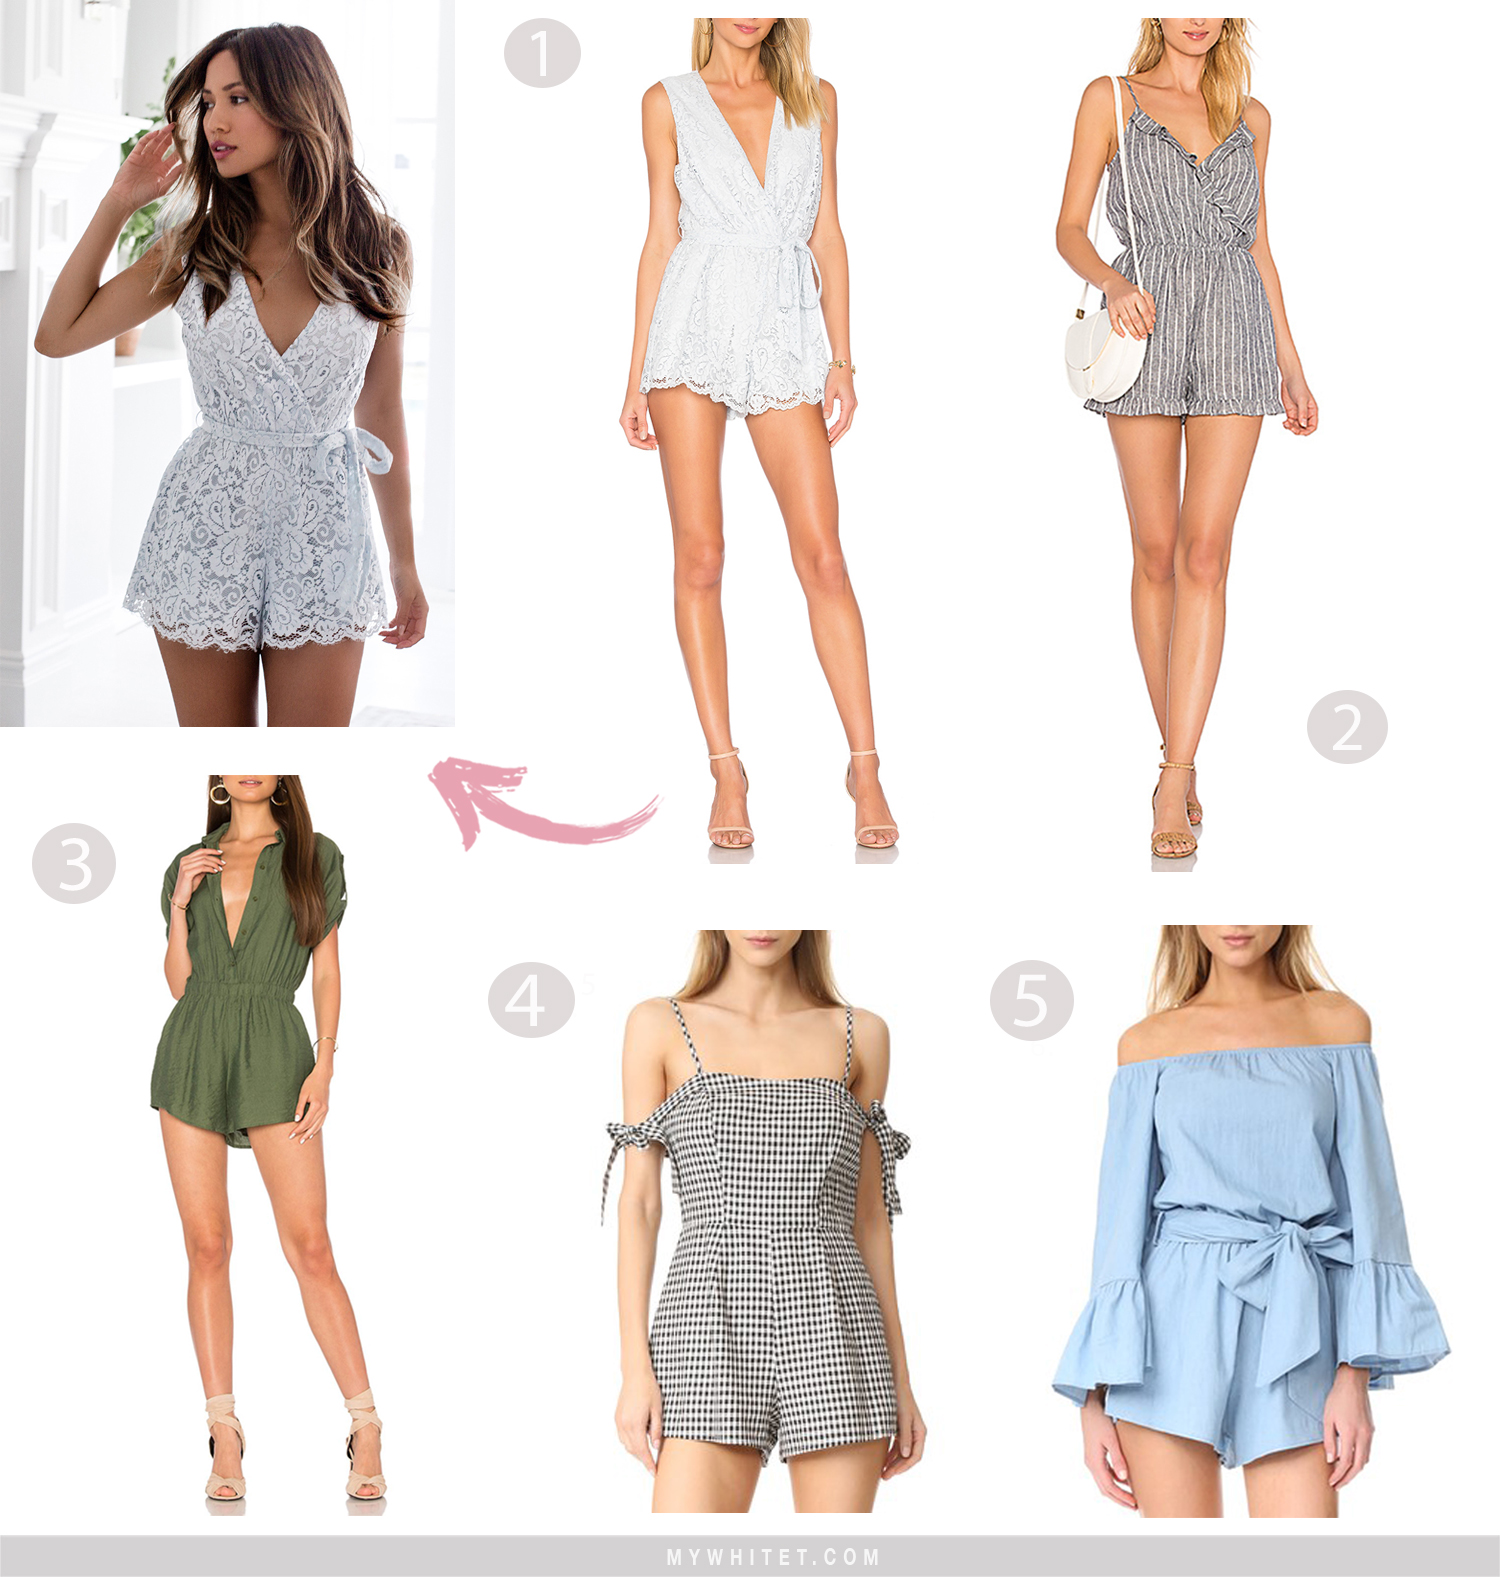 Jessi Malay casual rompers